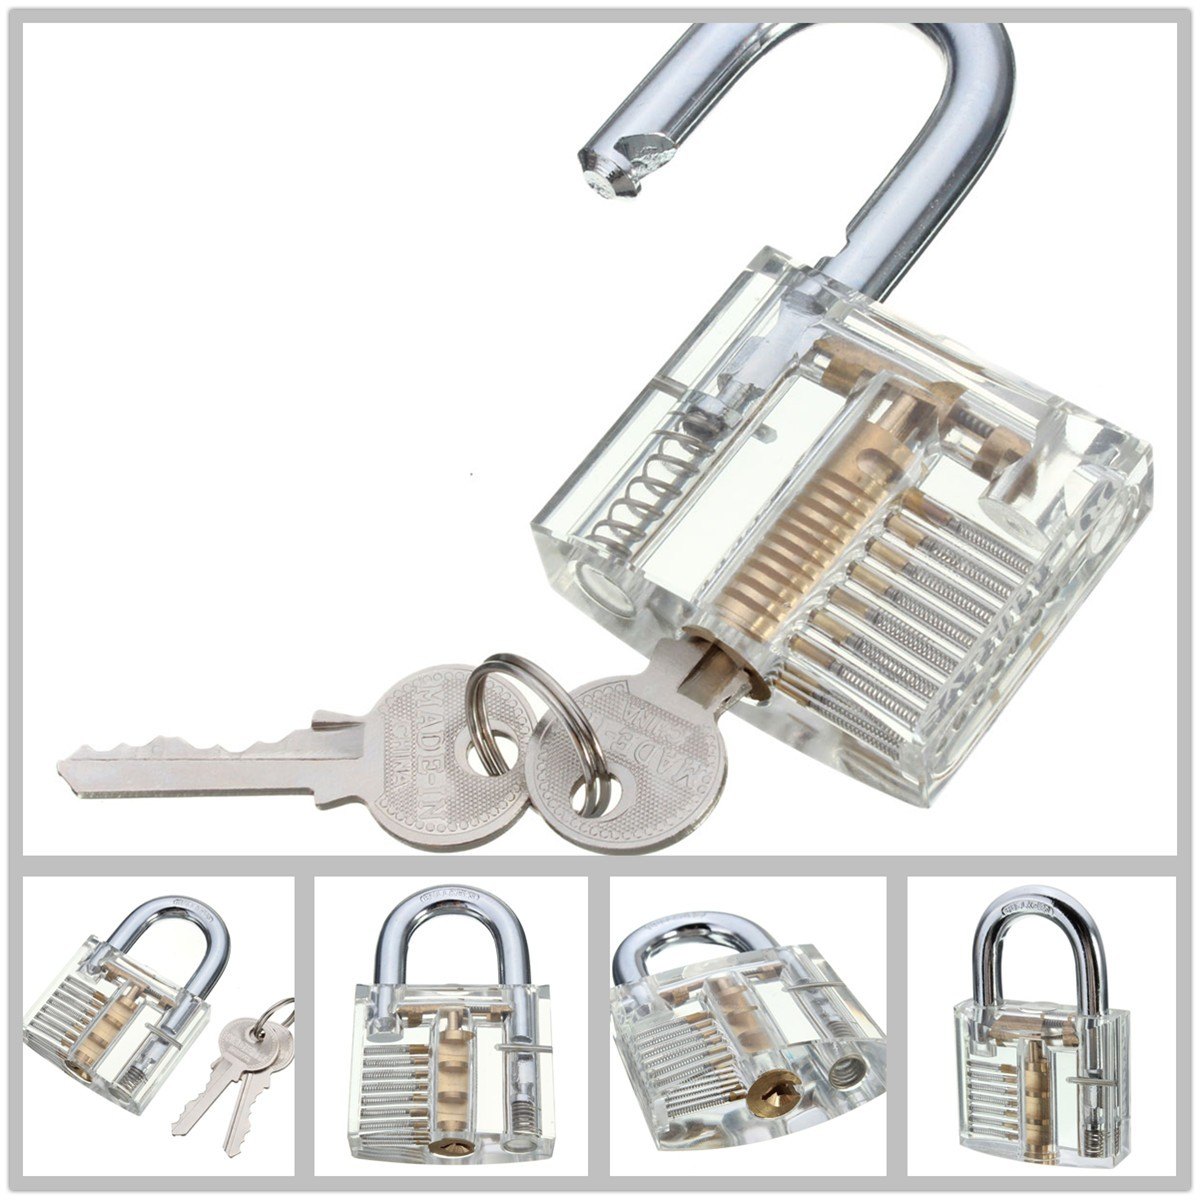 SPARTA visible cutaway practice lock for locksmith beginer - Lock picking training